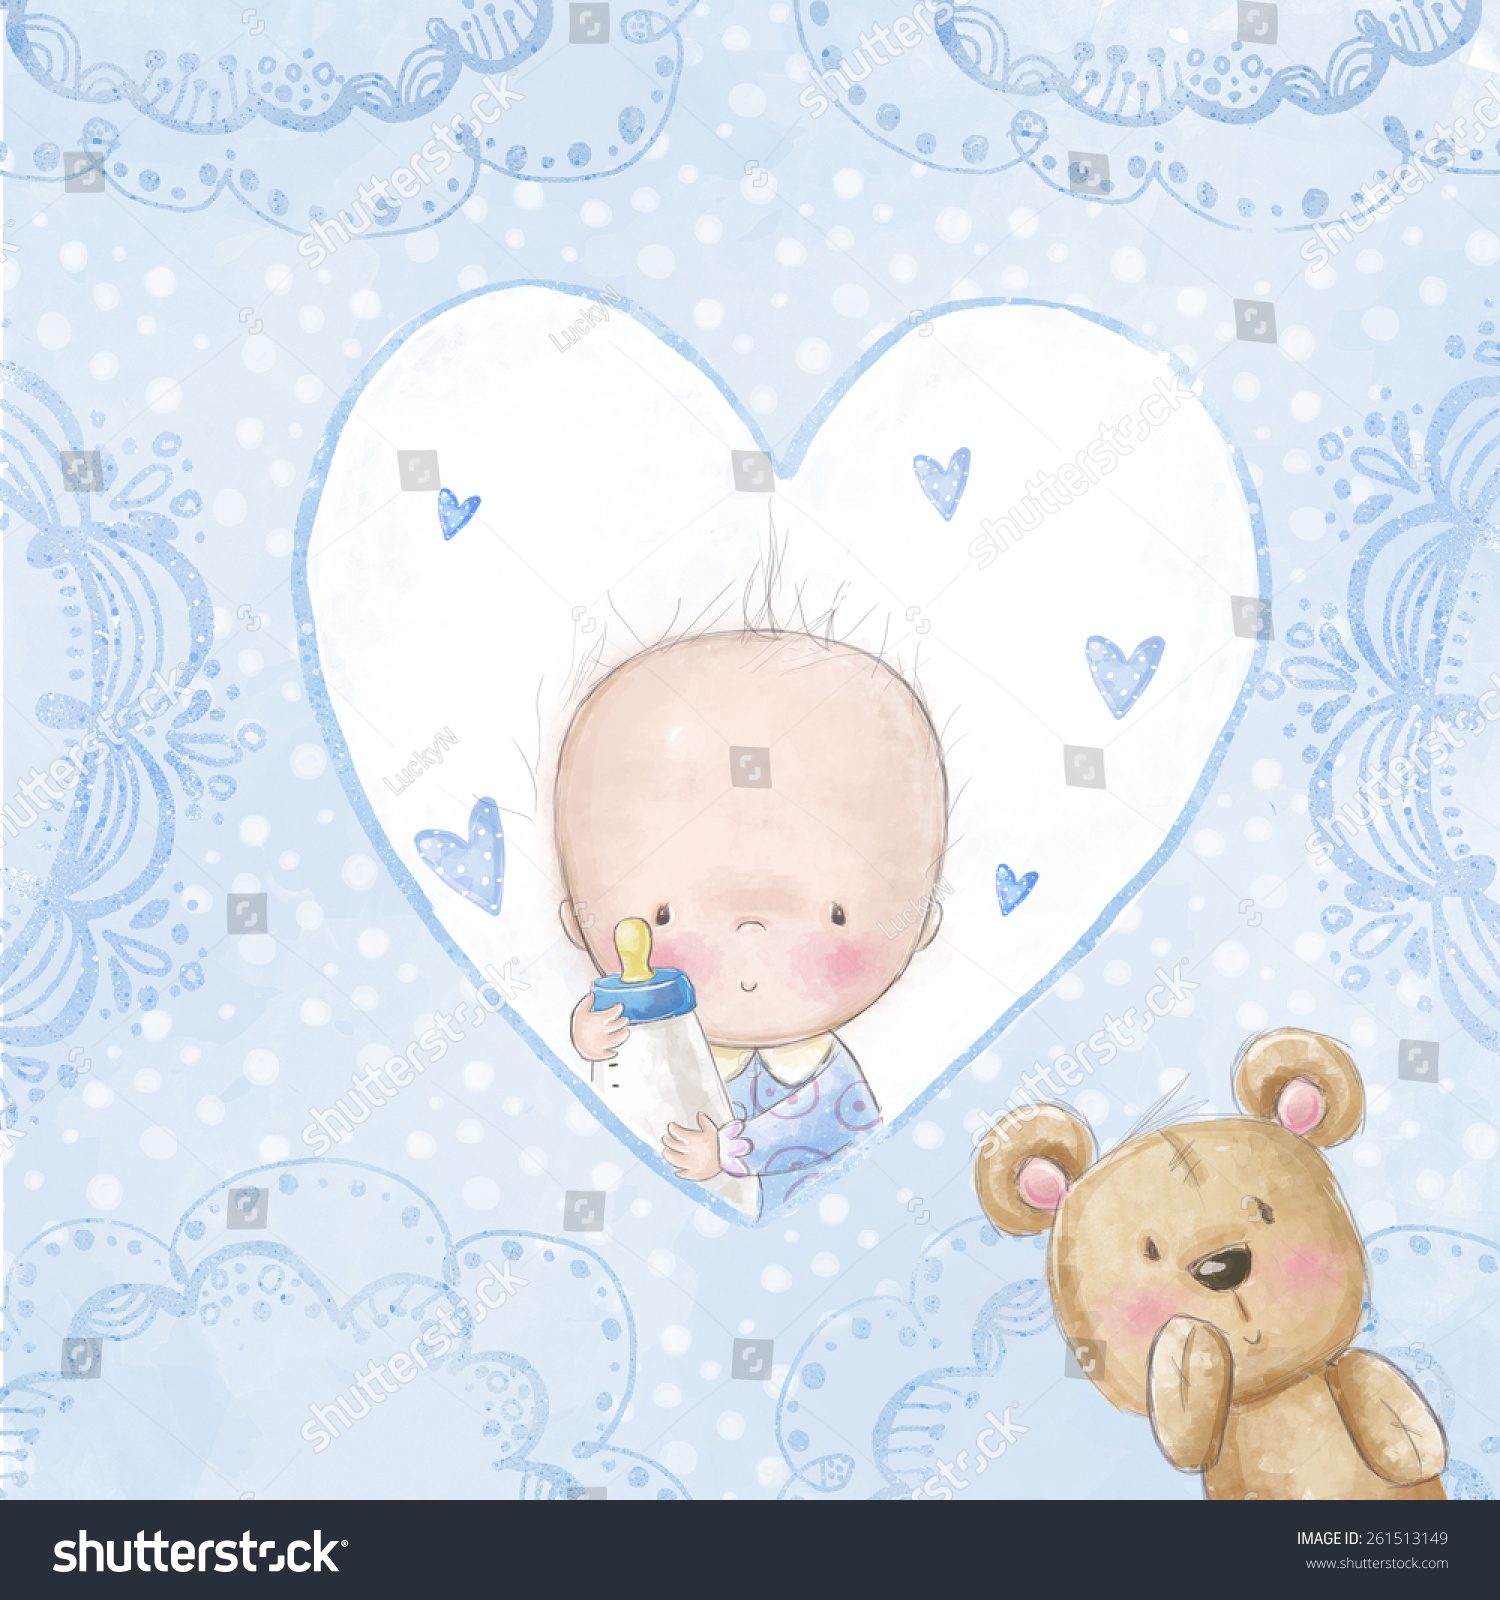 Baby shower greeting card.Baby boy with teddy Love background for children.Baptism invitation Newborn card design Newborn photo-album cover design Its a girl card